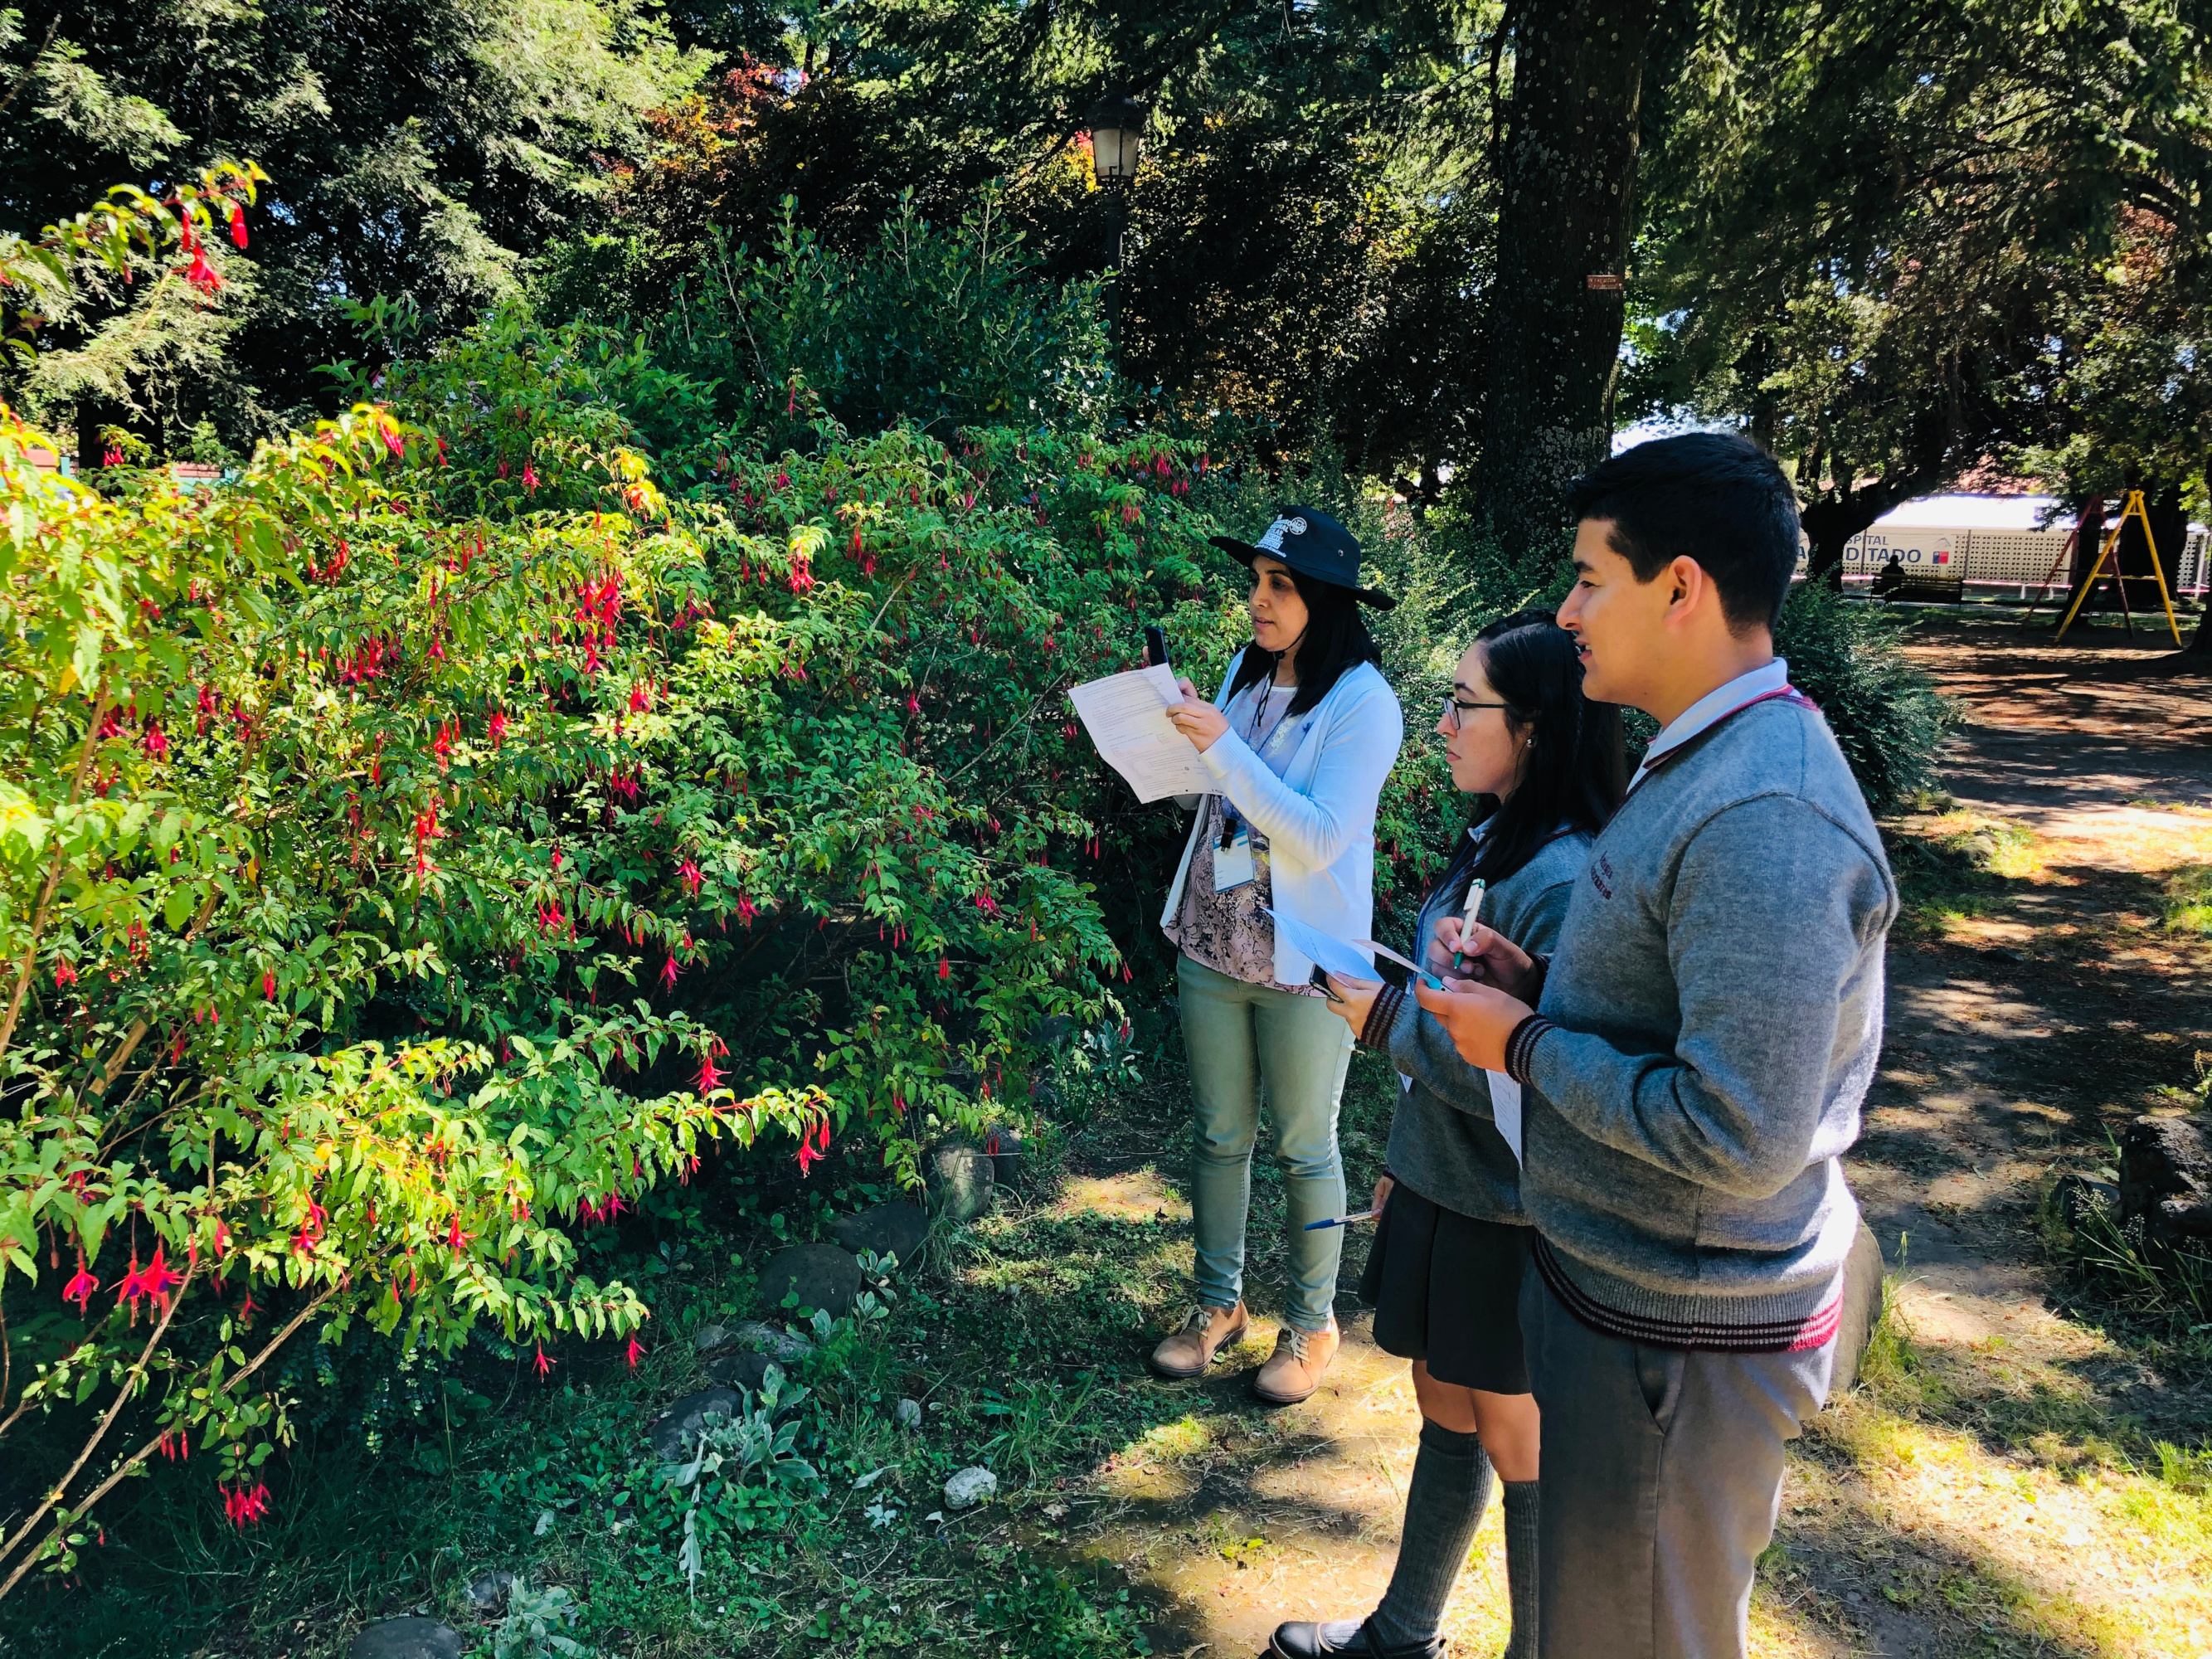 School children from the Araucania region studying pollinators